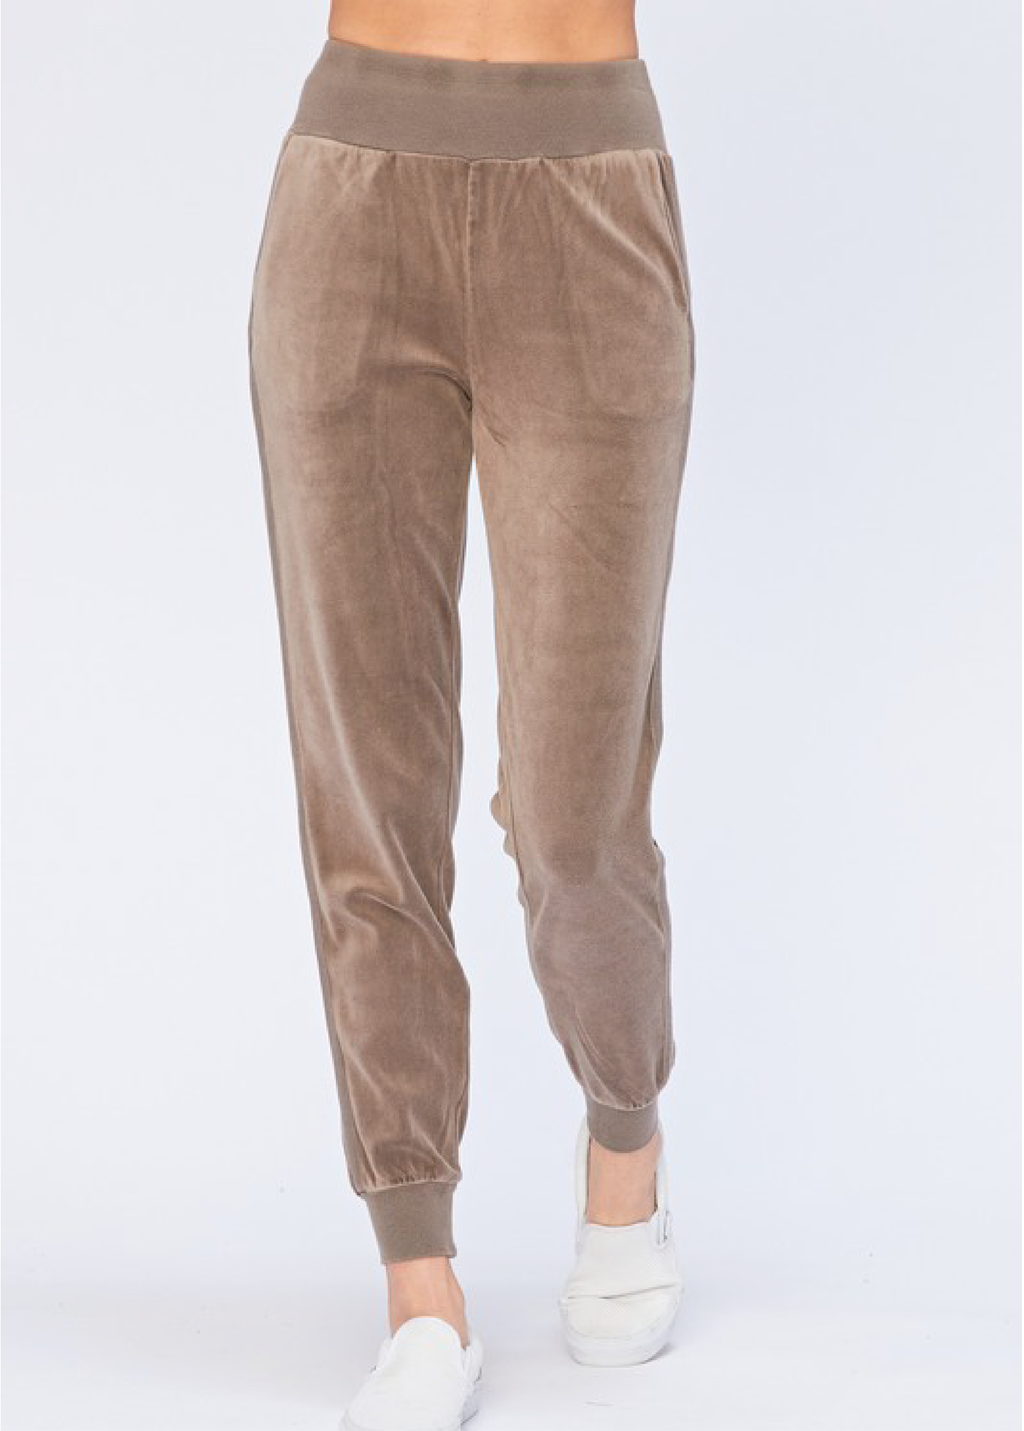 Morning Coffee Lounge Pants in Cinnamon